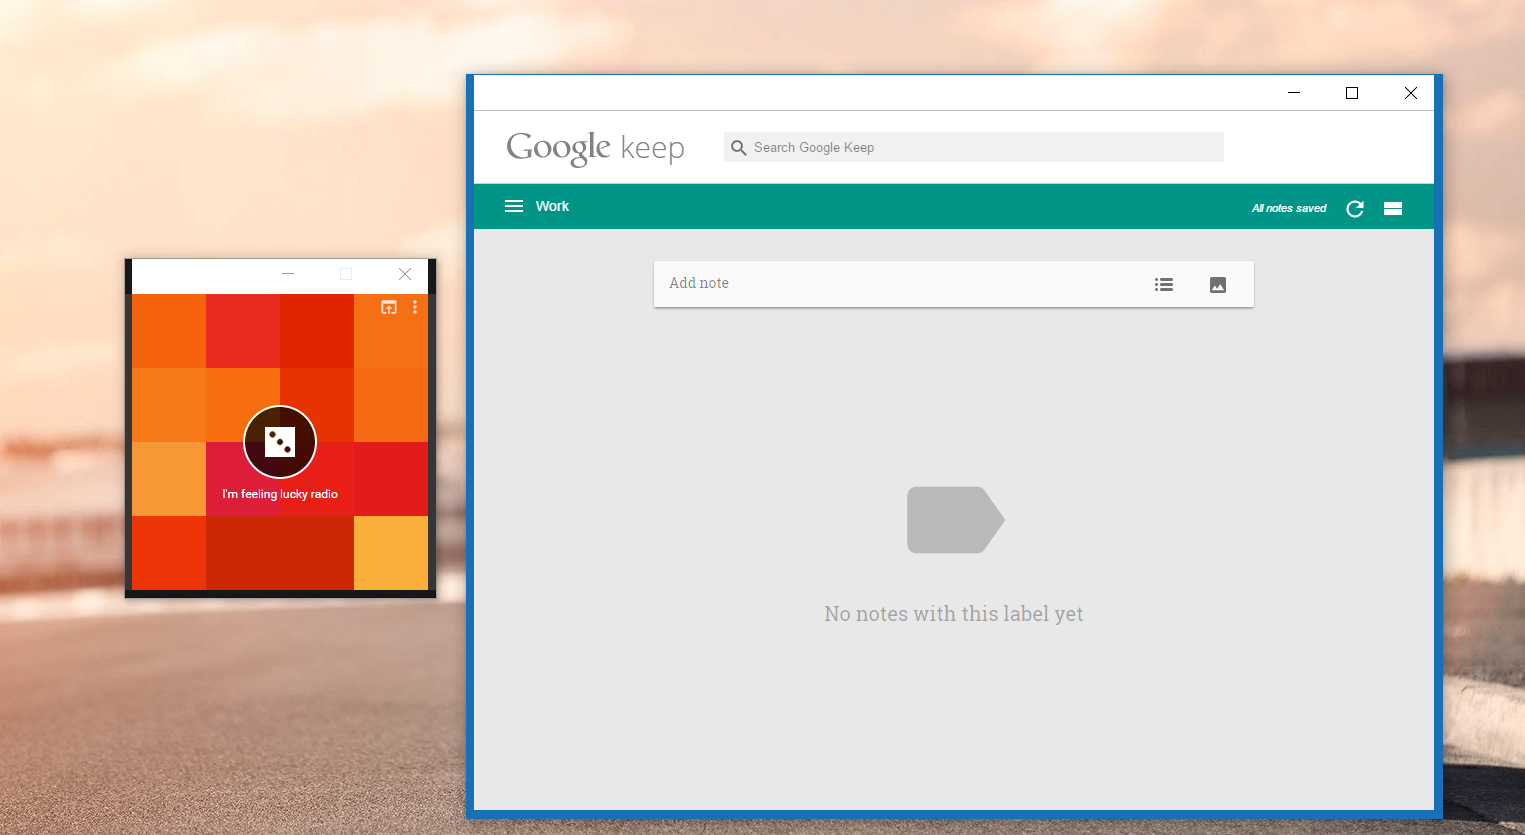 Popout Chrome Apps (keep, google play music) not rendering